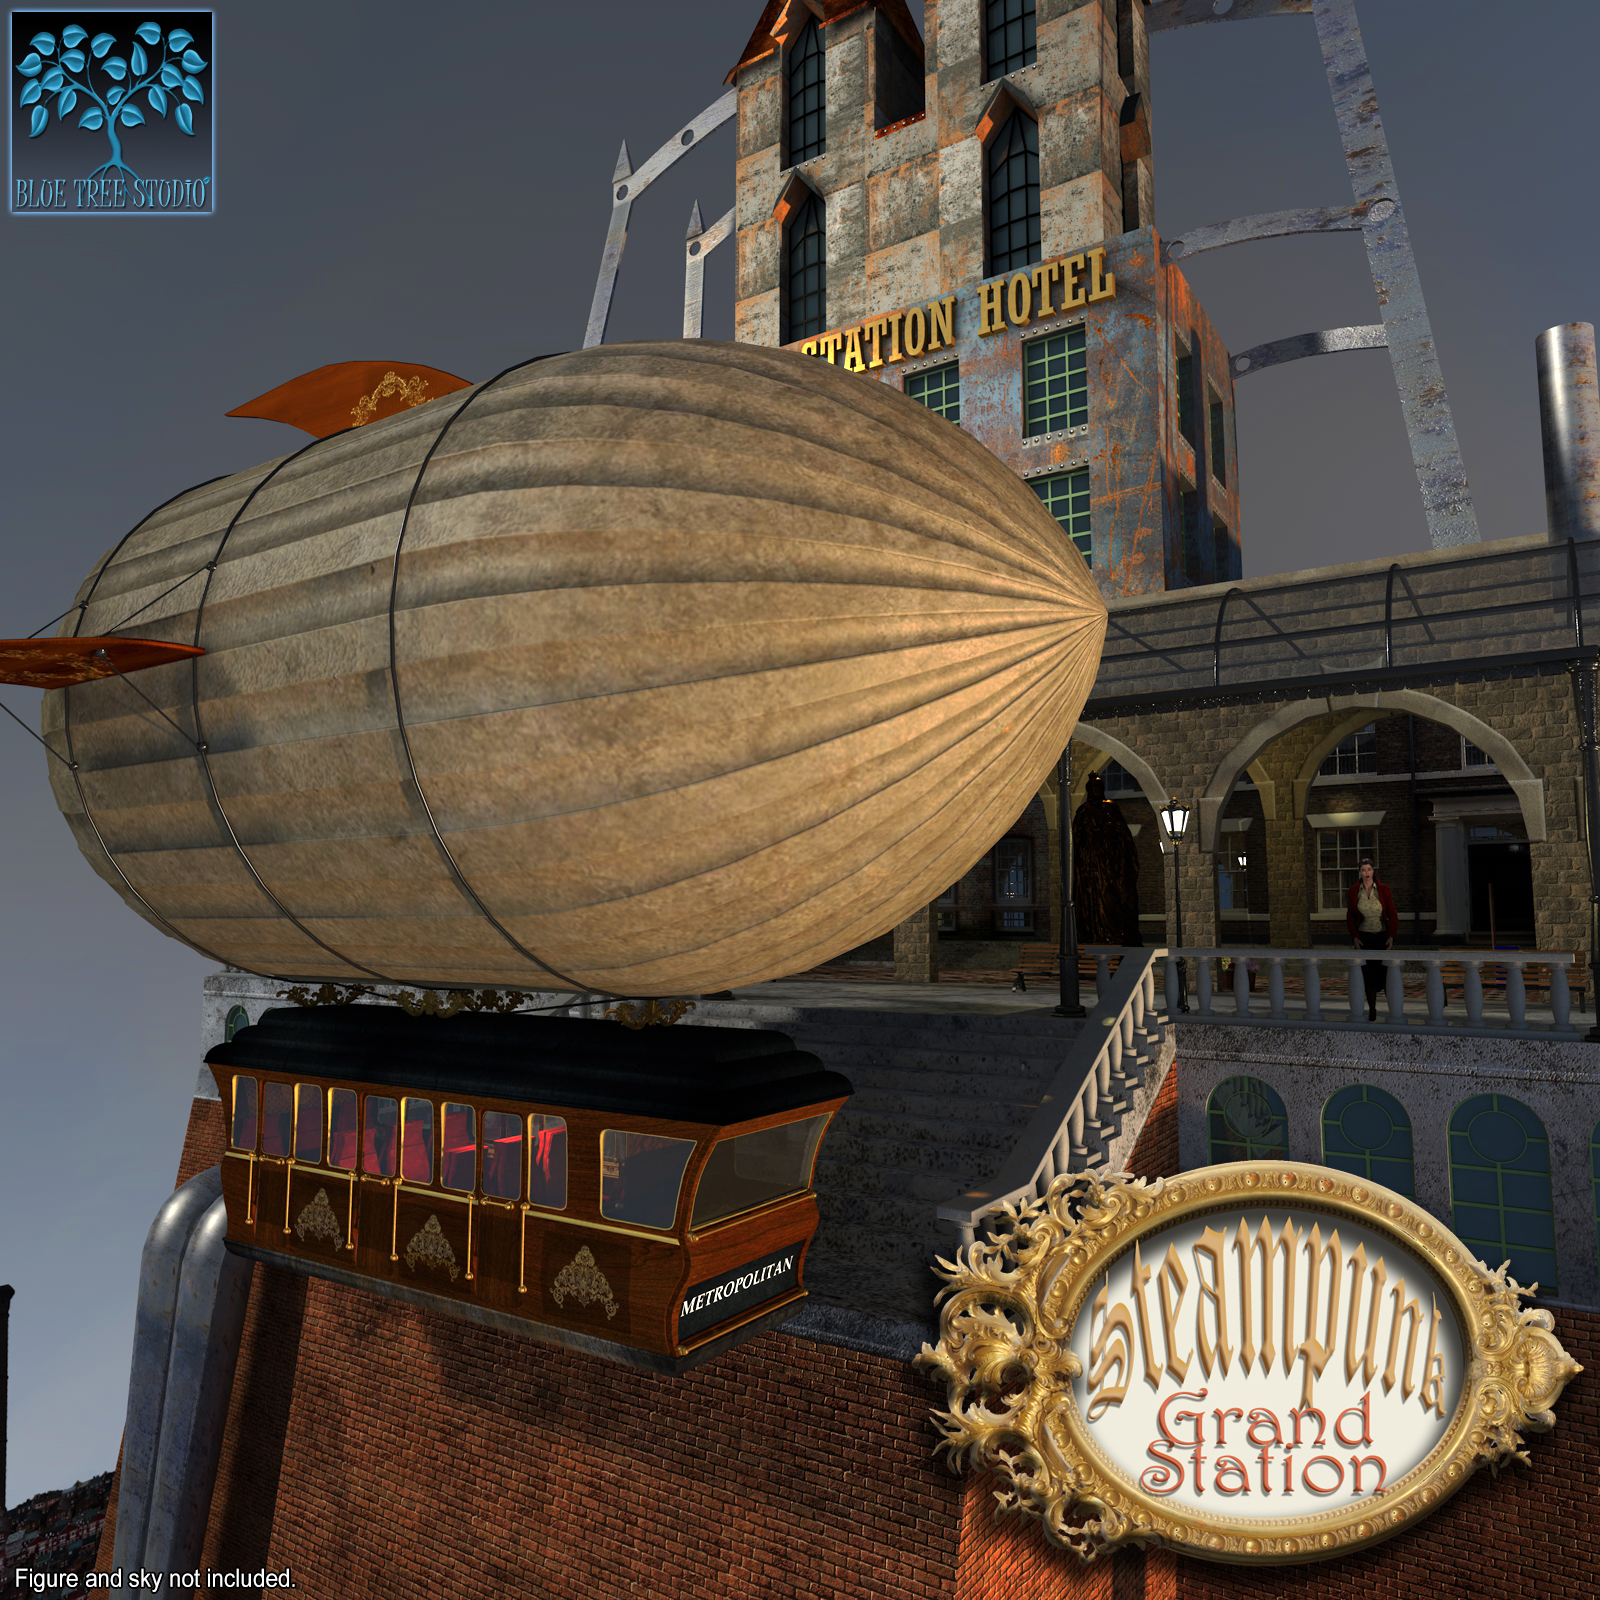 Steampunk Grand Station for Poser